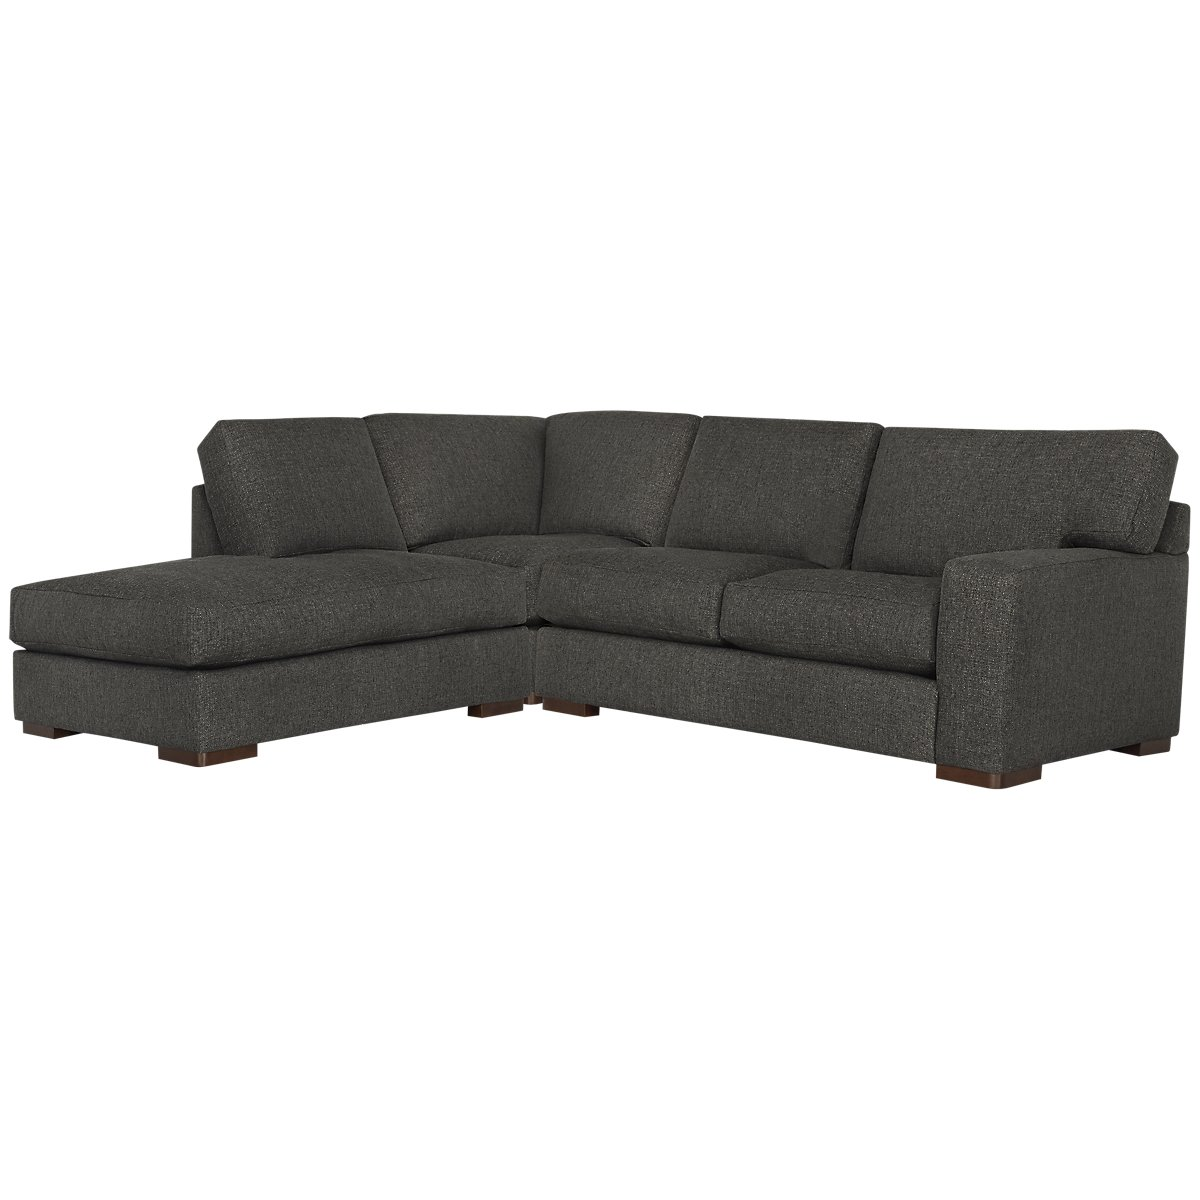 Veronica Dark Brown Fabric Left Bumper Sectional